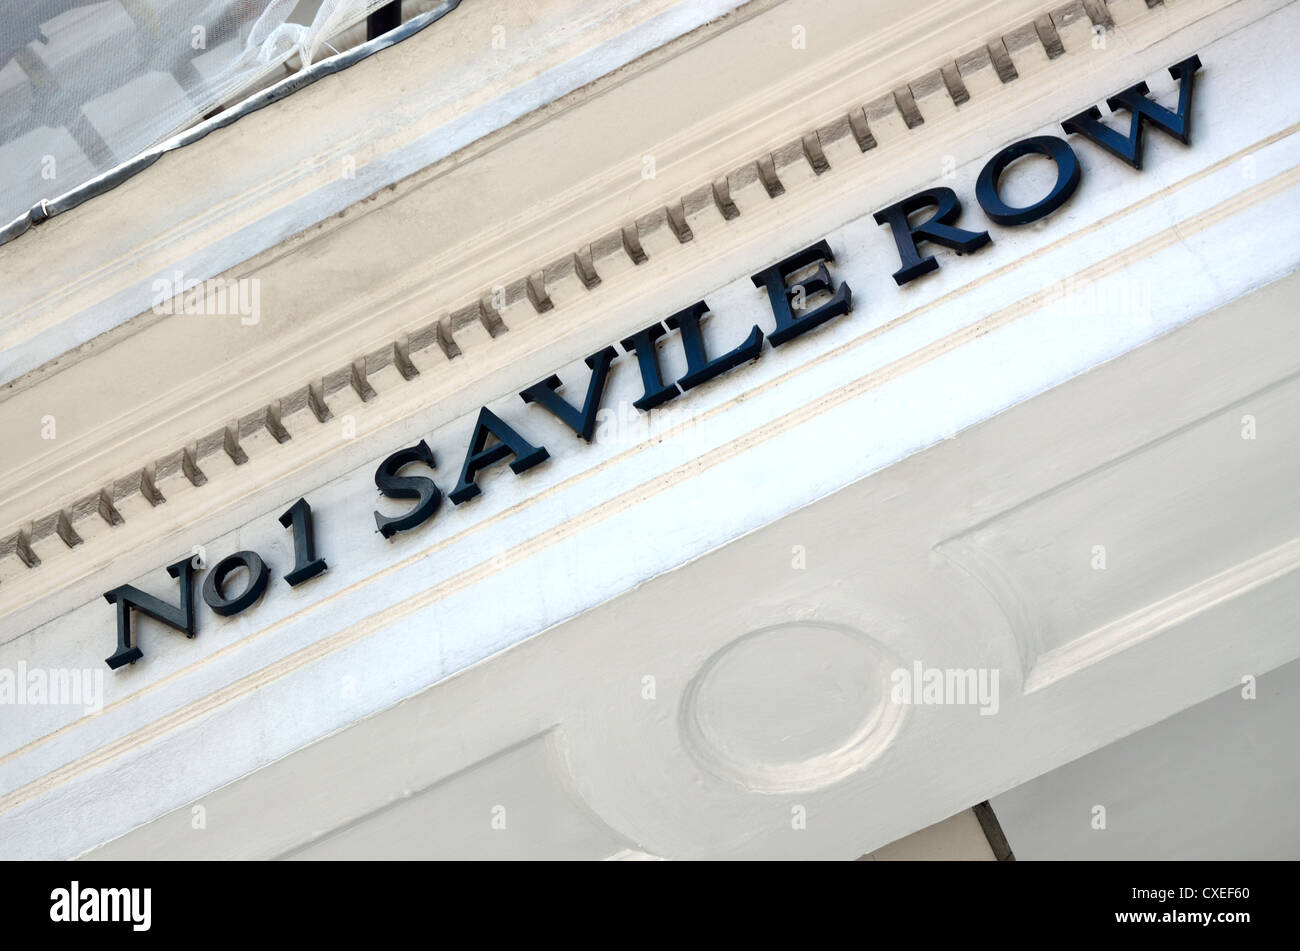 London, England, UK. No 1 Saville Row - Gieves and Hawkes shop - Stock Image